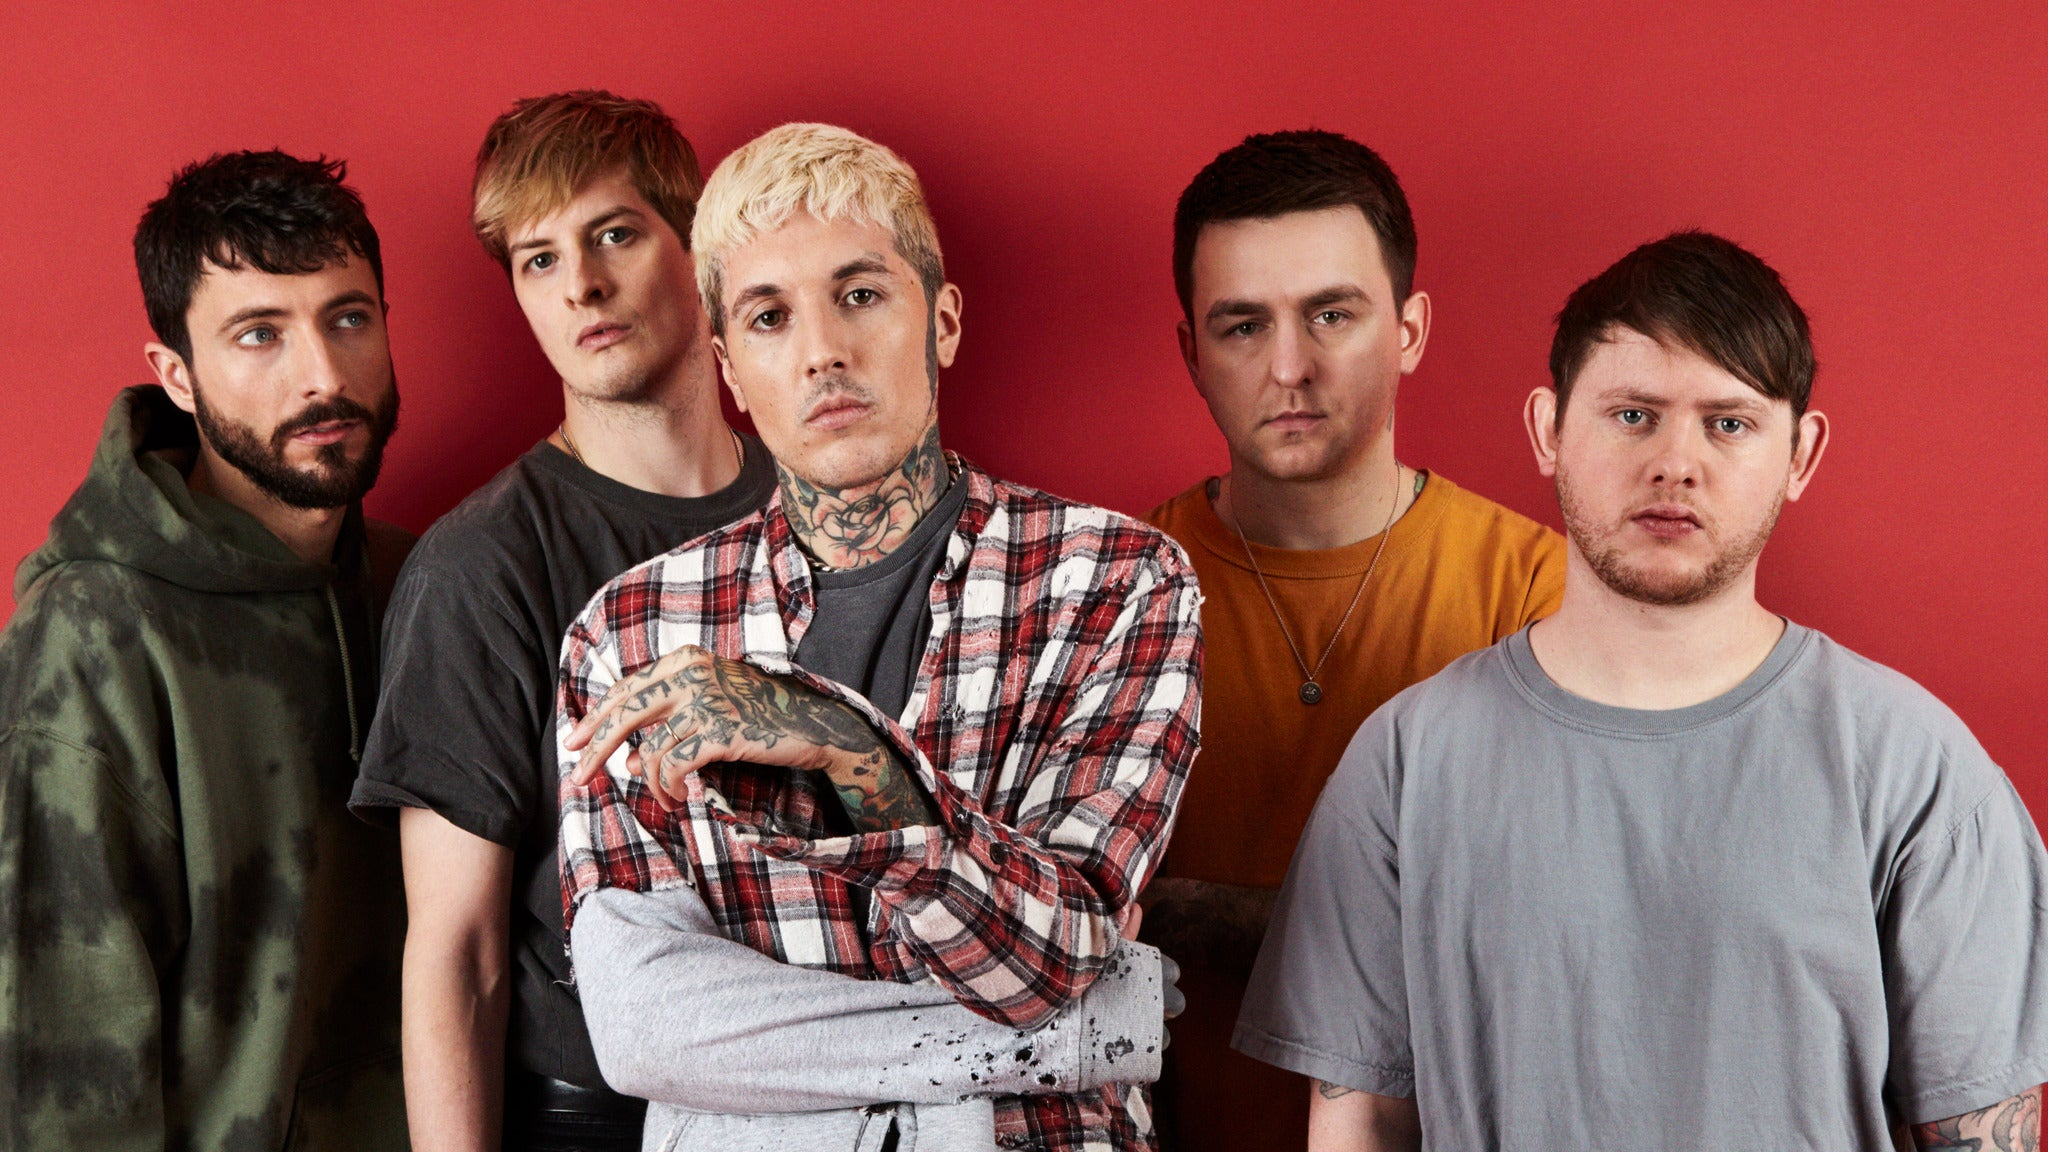 Ponle play al sorpresivo y experimental nuevo disco de Bring Me The Horizon